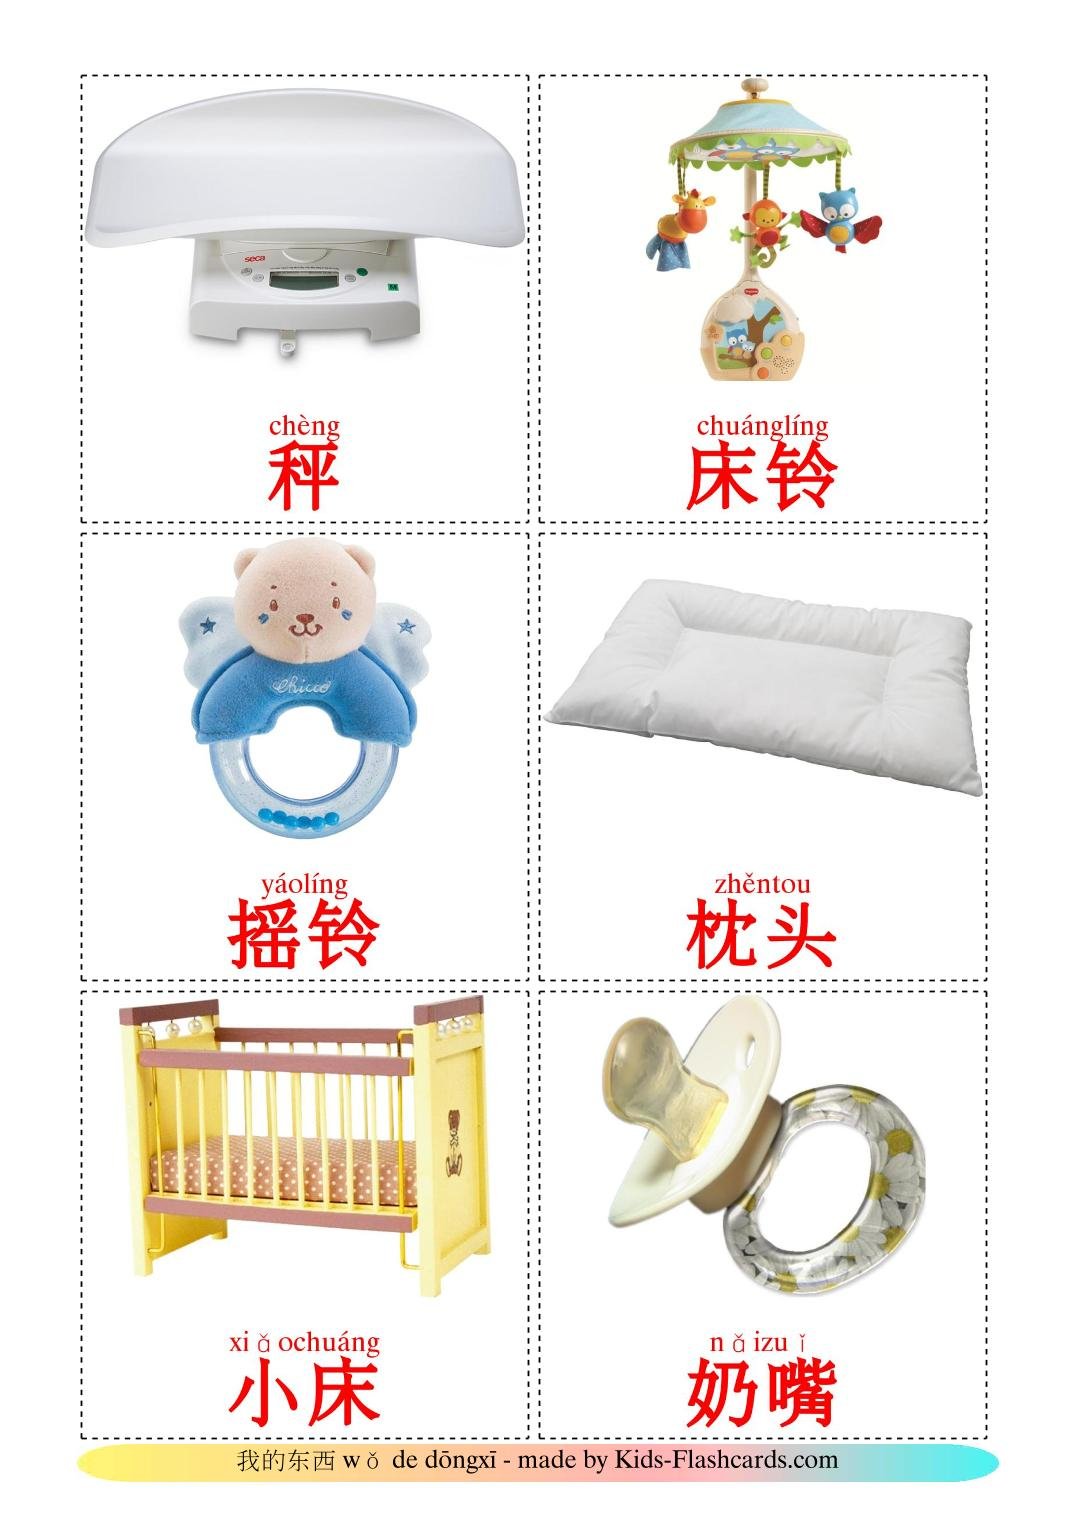 My Things - 20 Free Printable chinese(Simplified) Flashcards